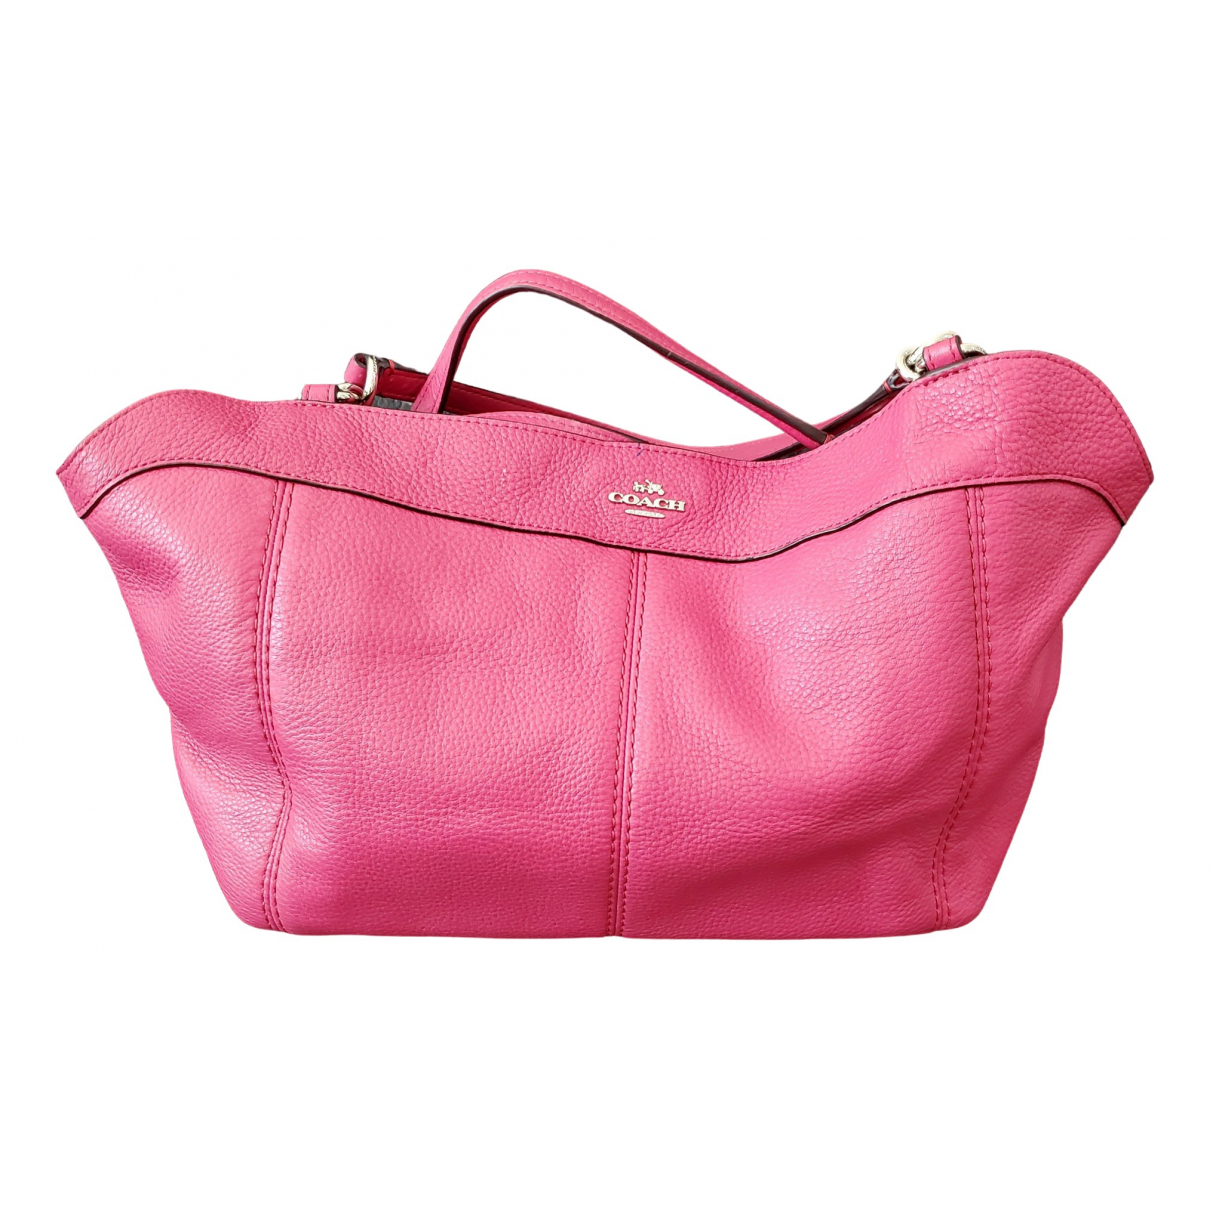 Coach Gramercy Satchel Pink Leather handbag for Women \N